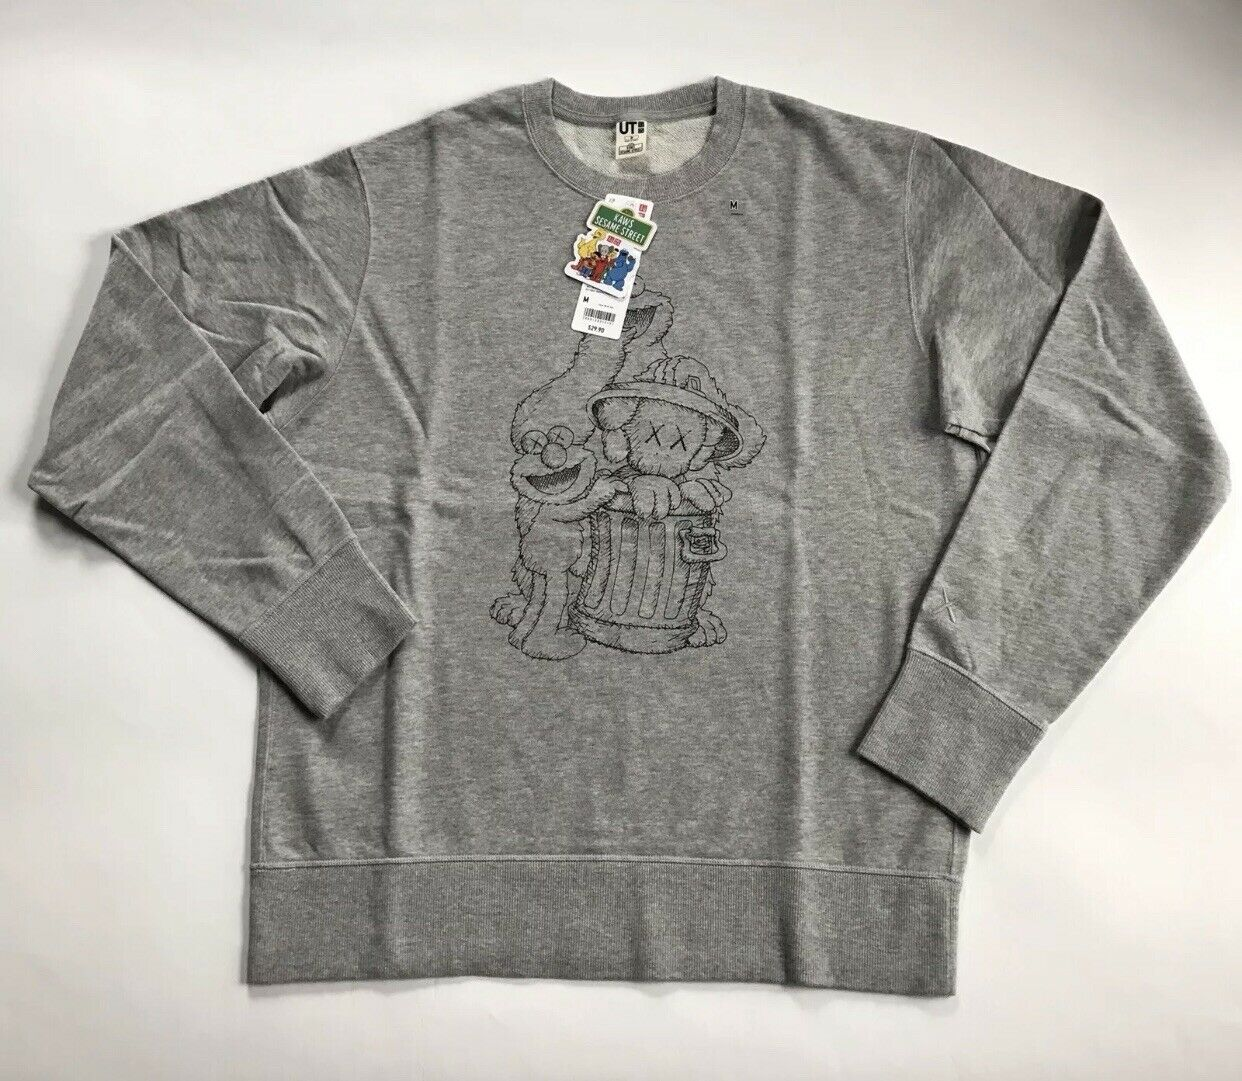 NEW Uniqlo Kaws X Sesame Street Men Sweater - Medium